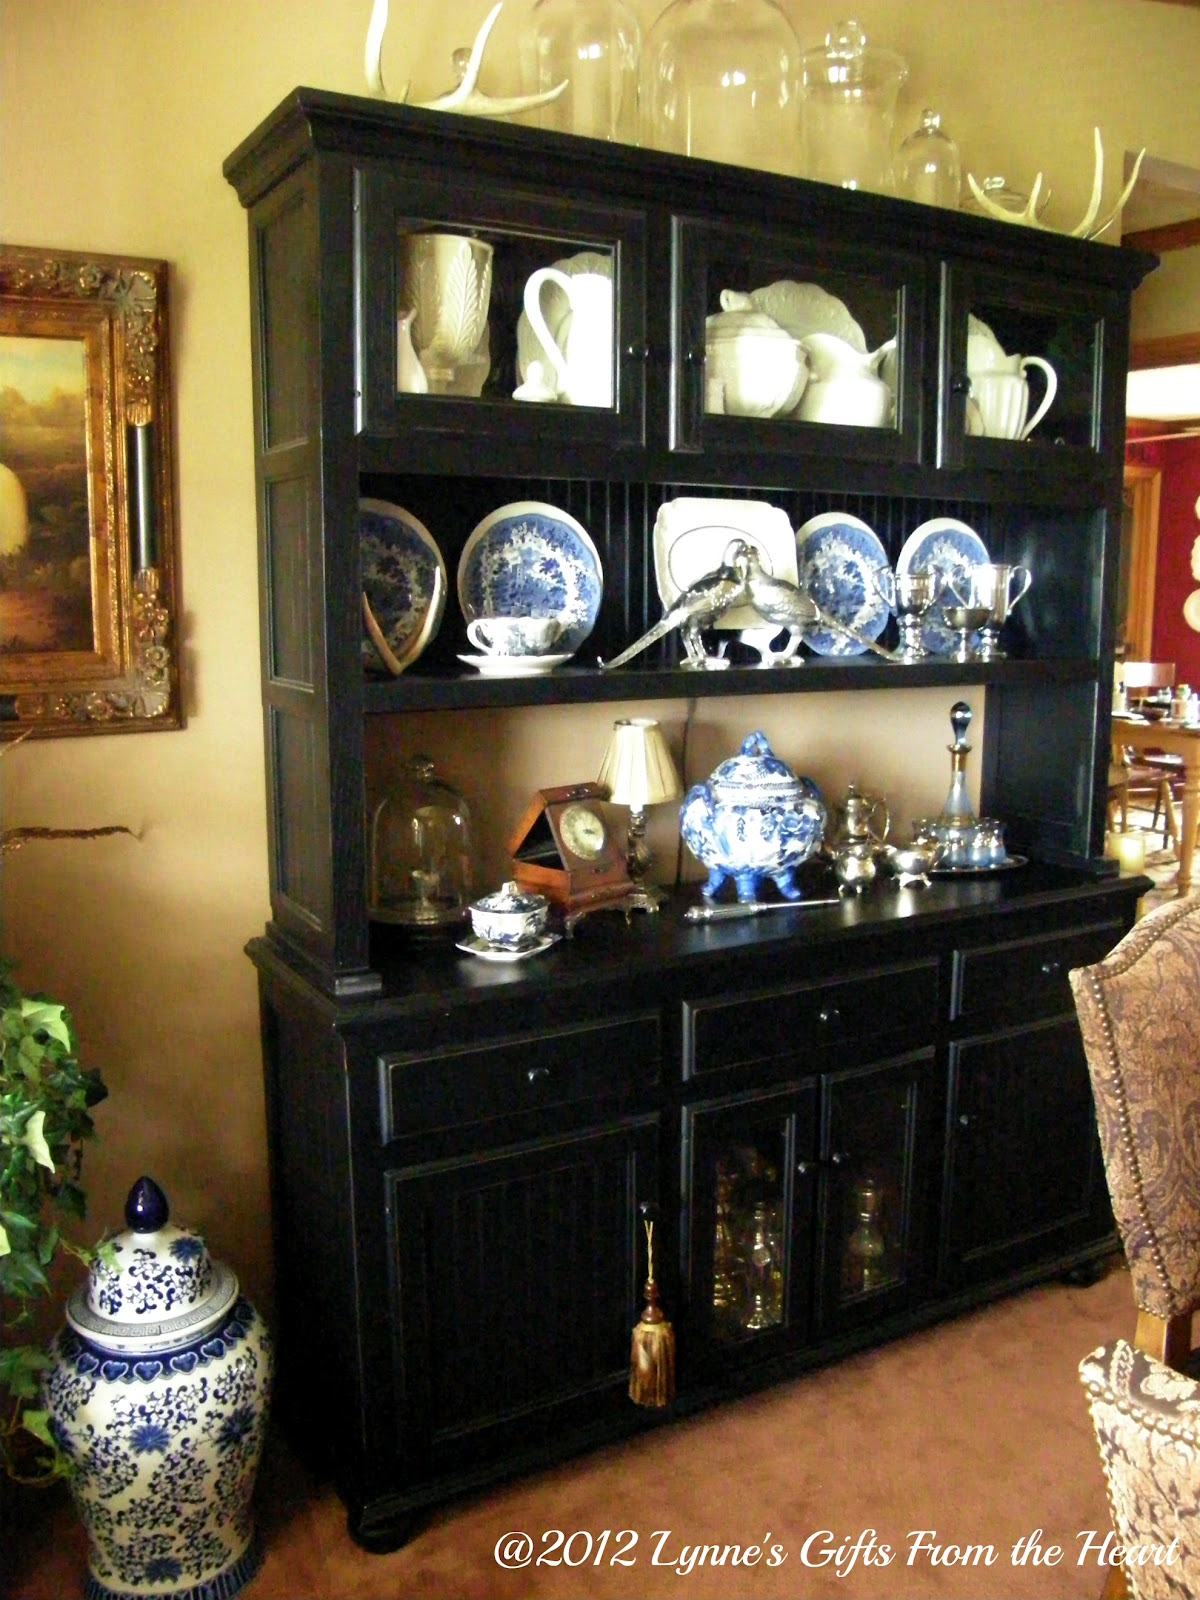 lynne 39 s gifts from the heart the dining room hutch